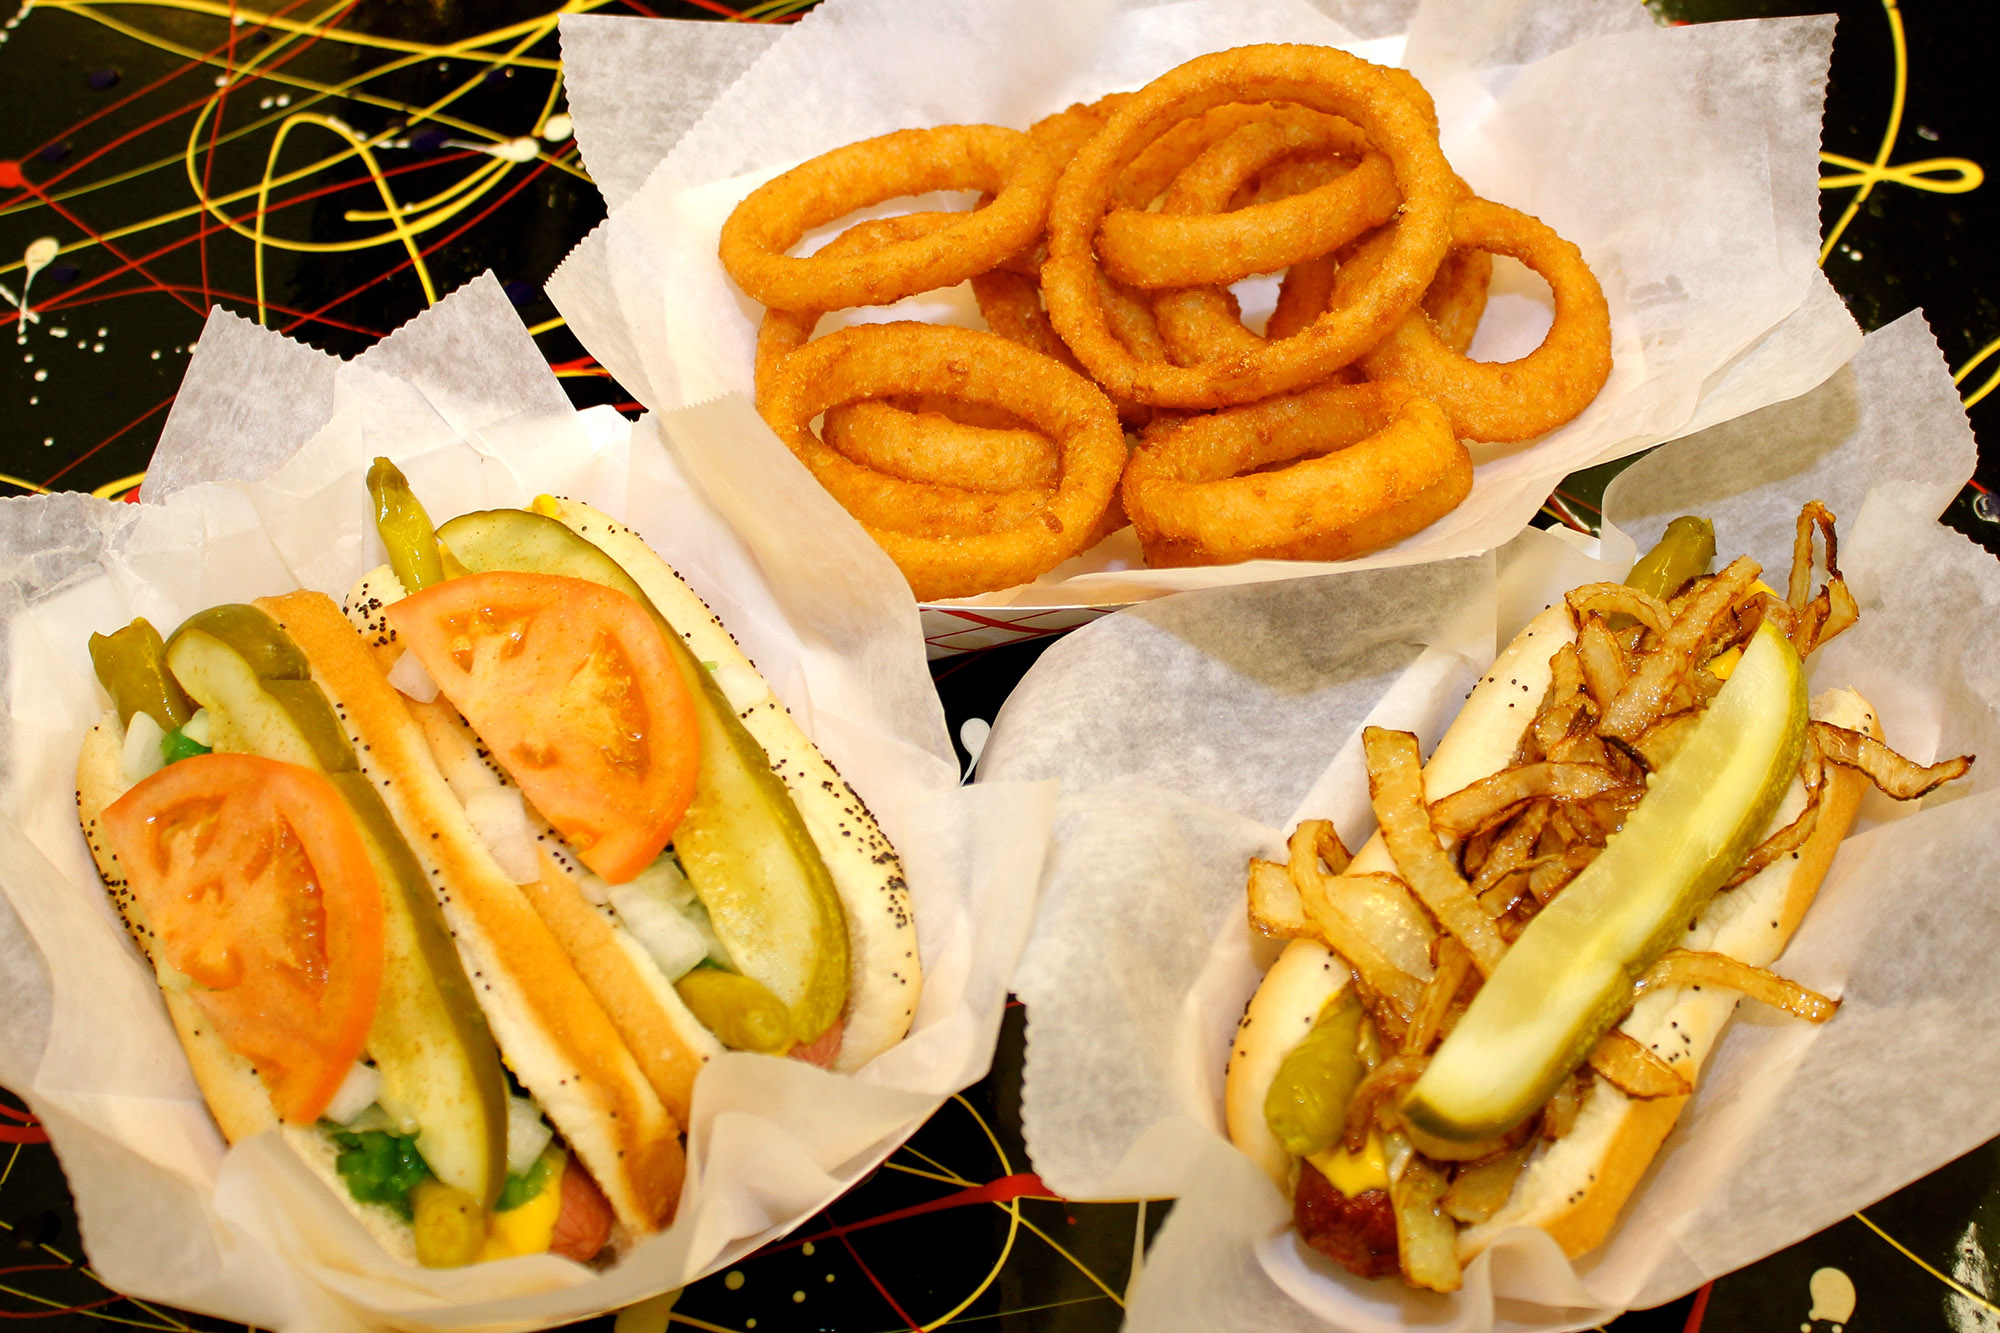 Mike's Hot Dogs